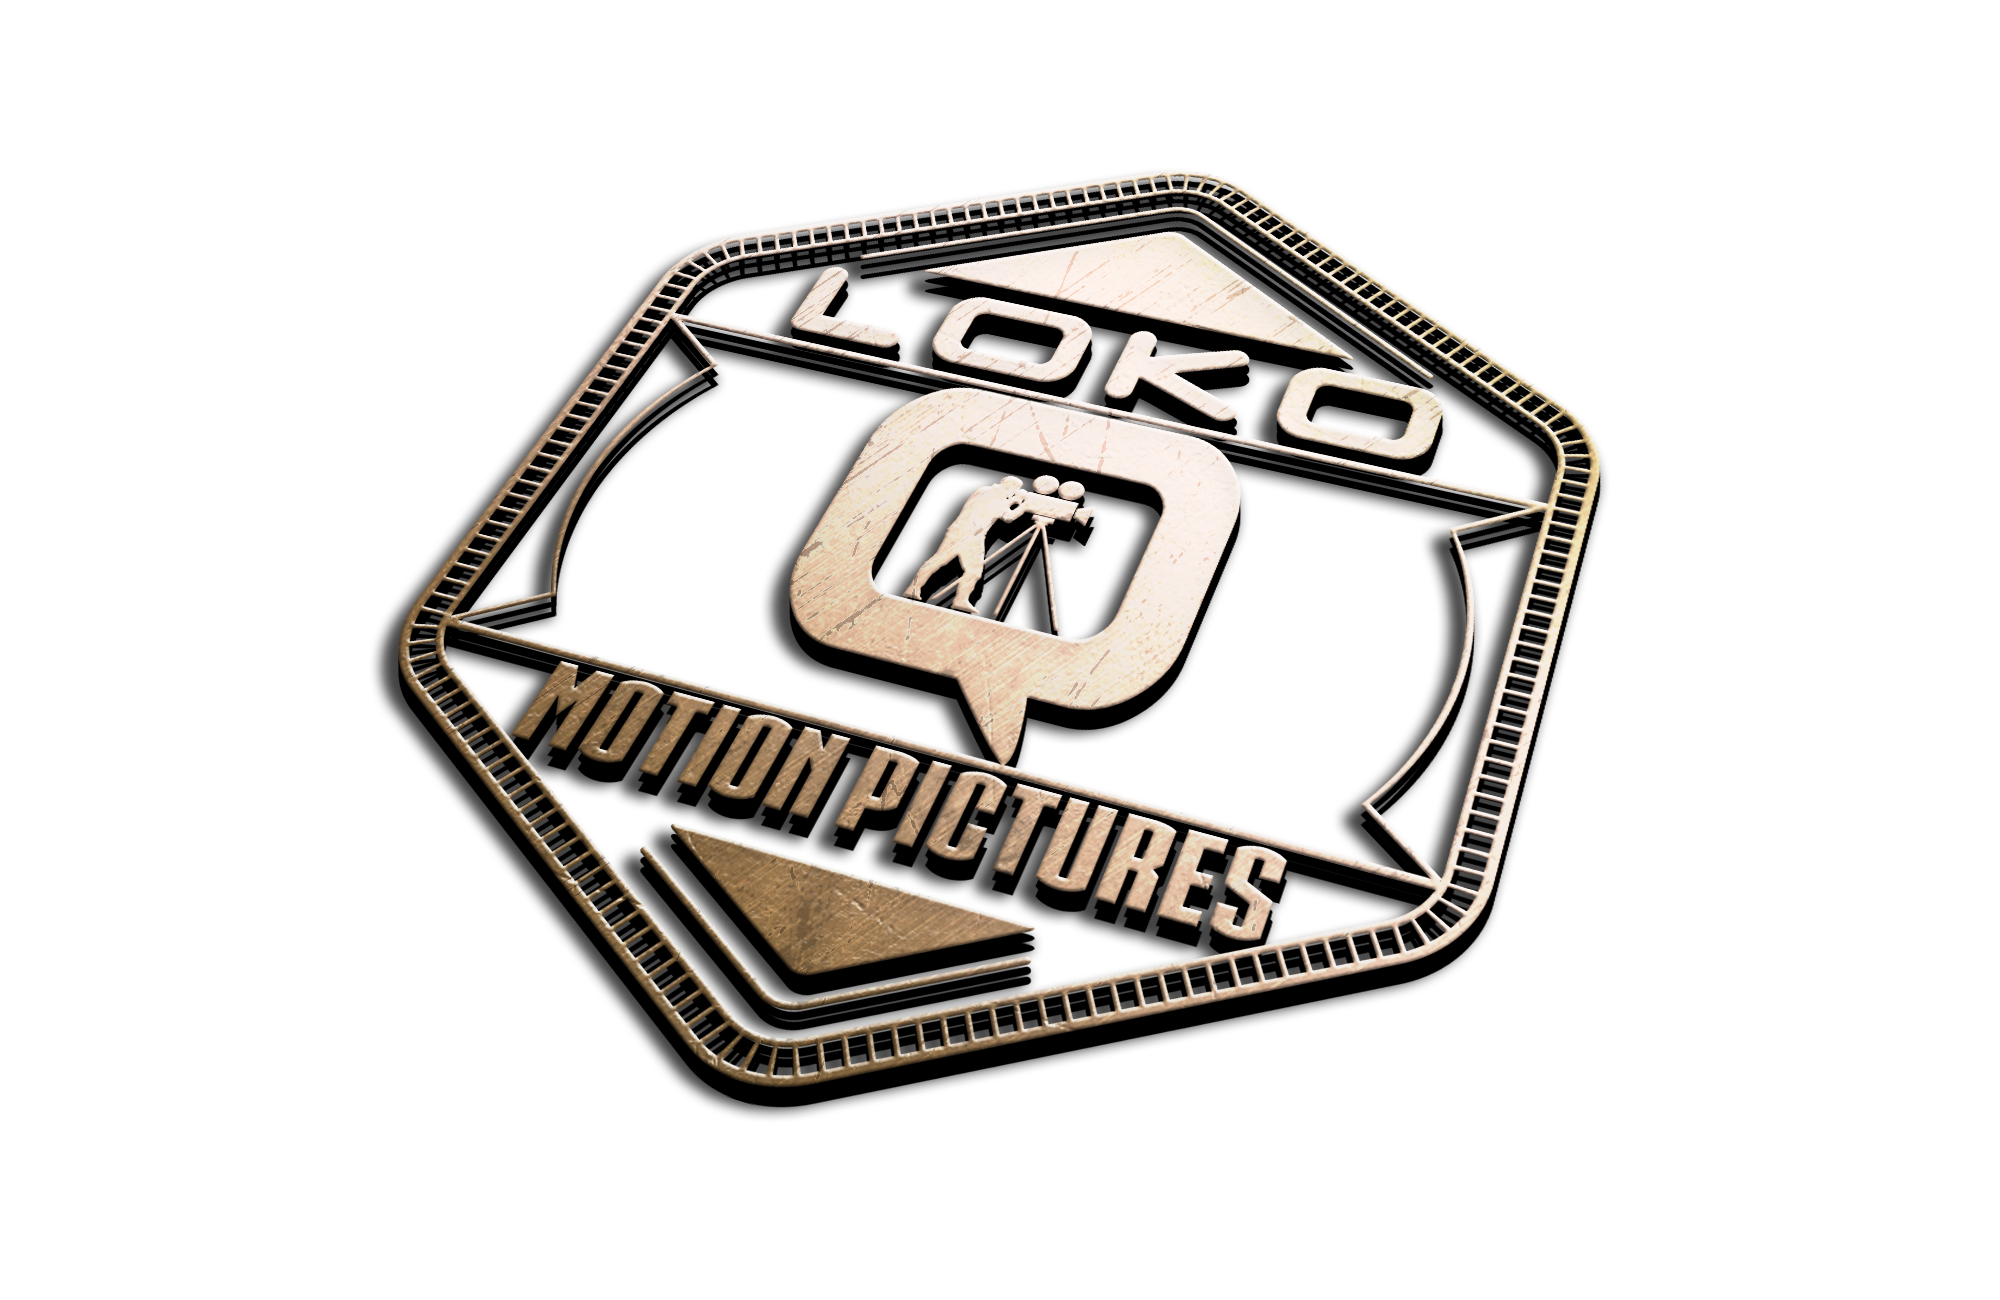 Q Loko Motion Pictures